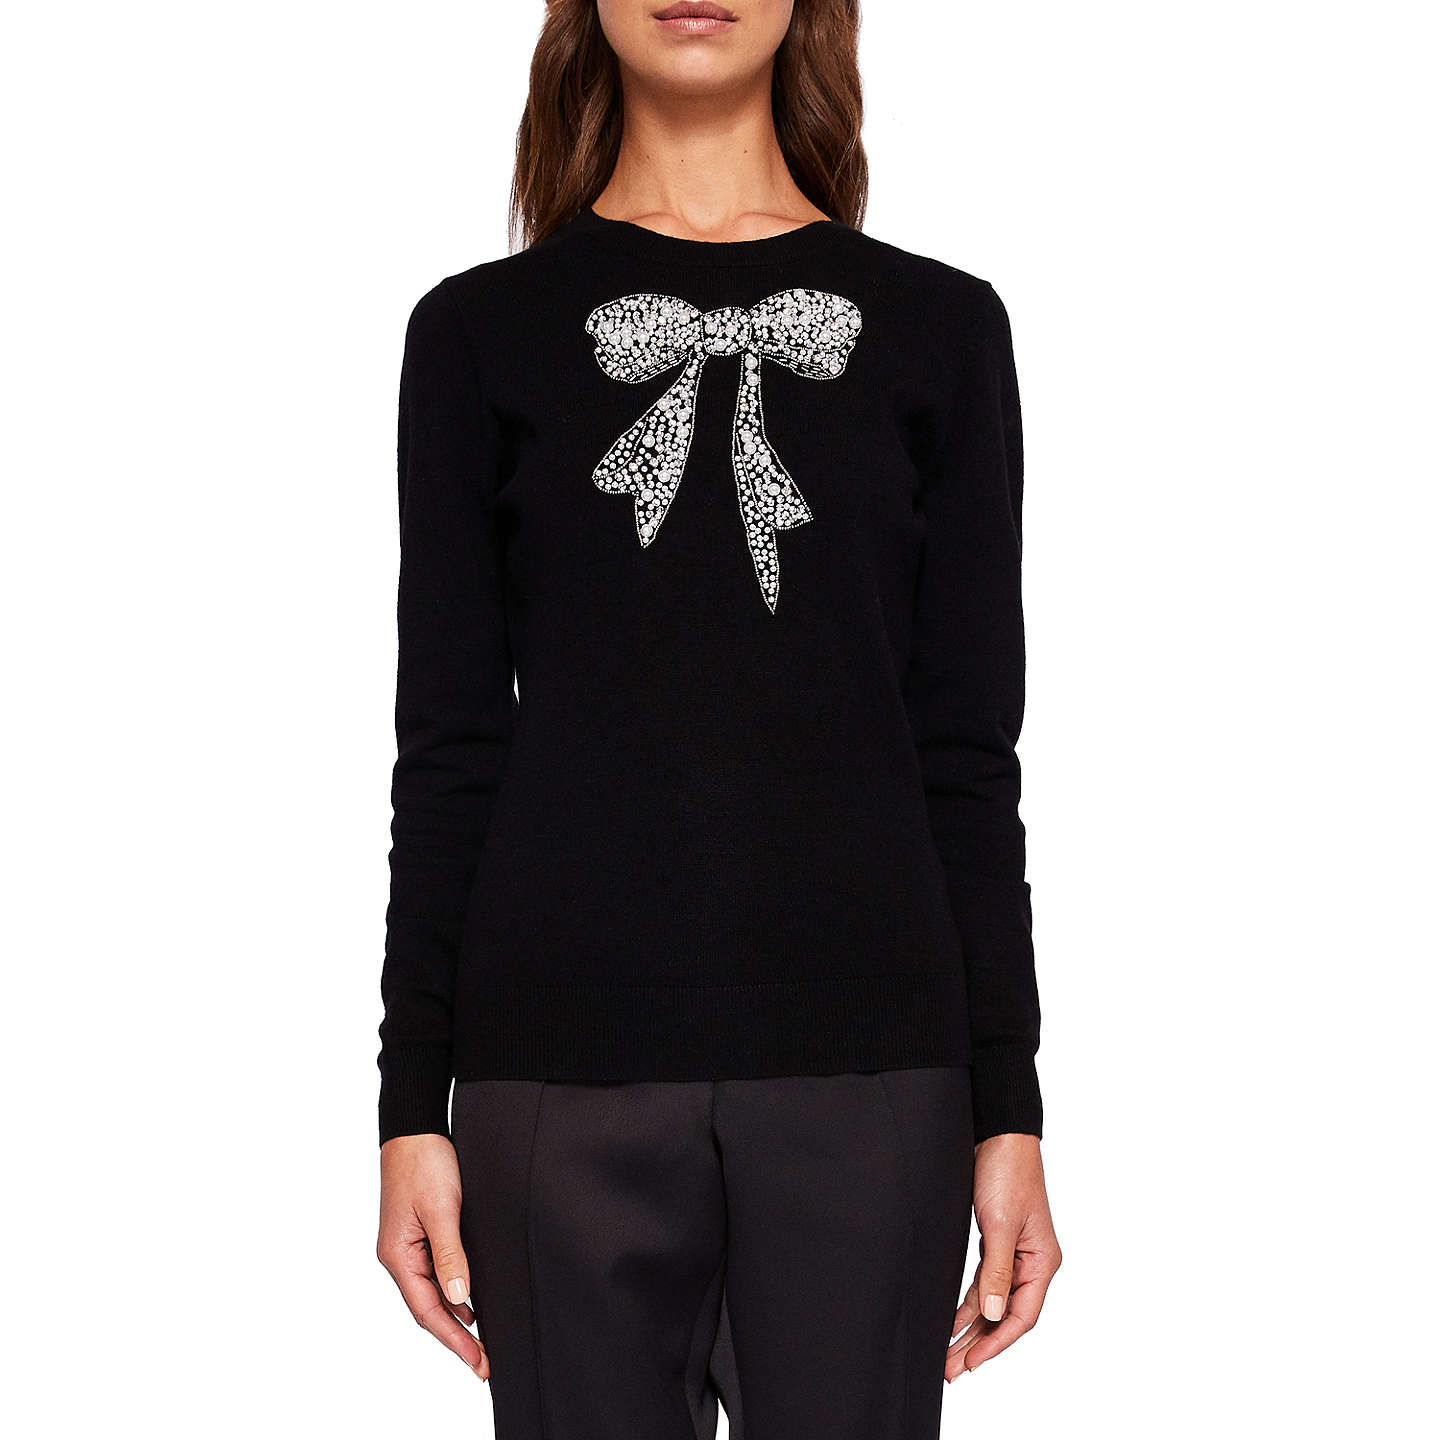 BuyTed Baker Bowsi Bow Embellished Jumper, Black, 0 Online at johnlewis.com